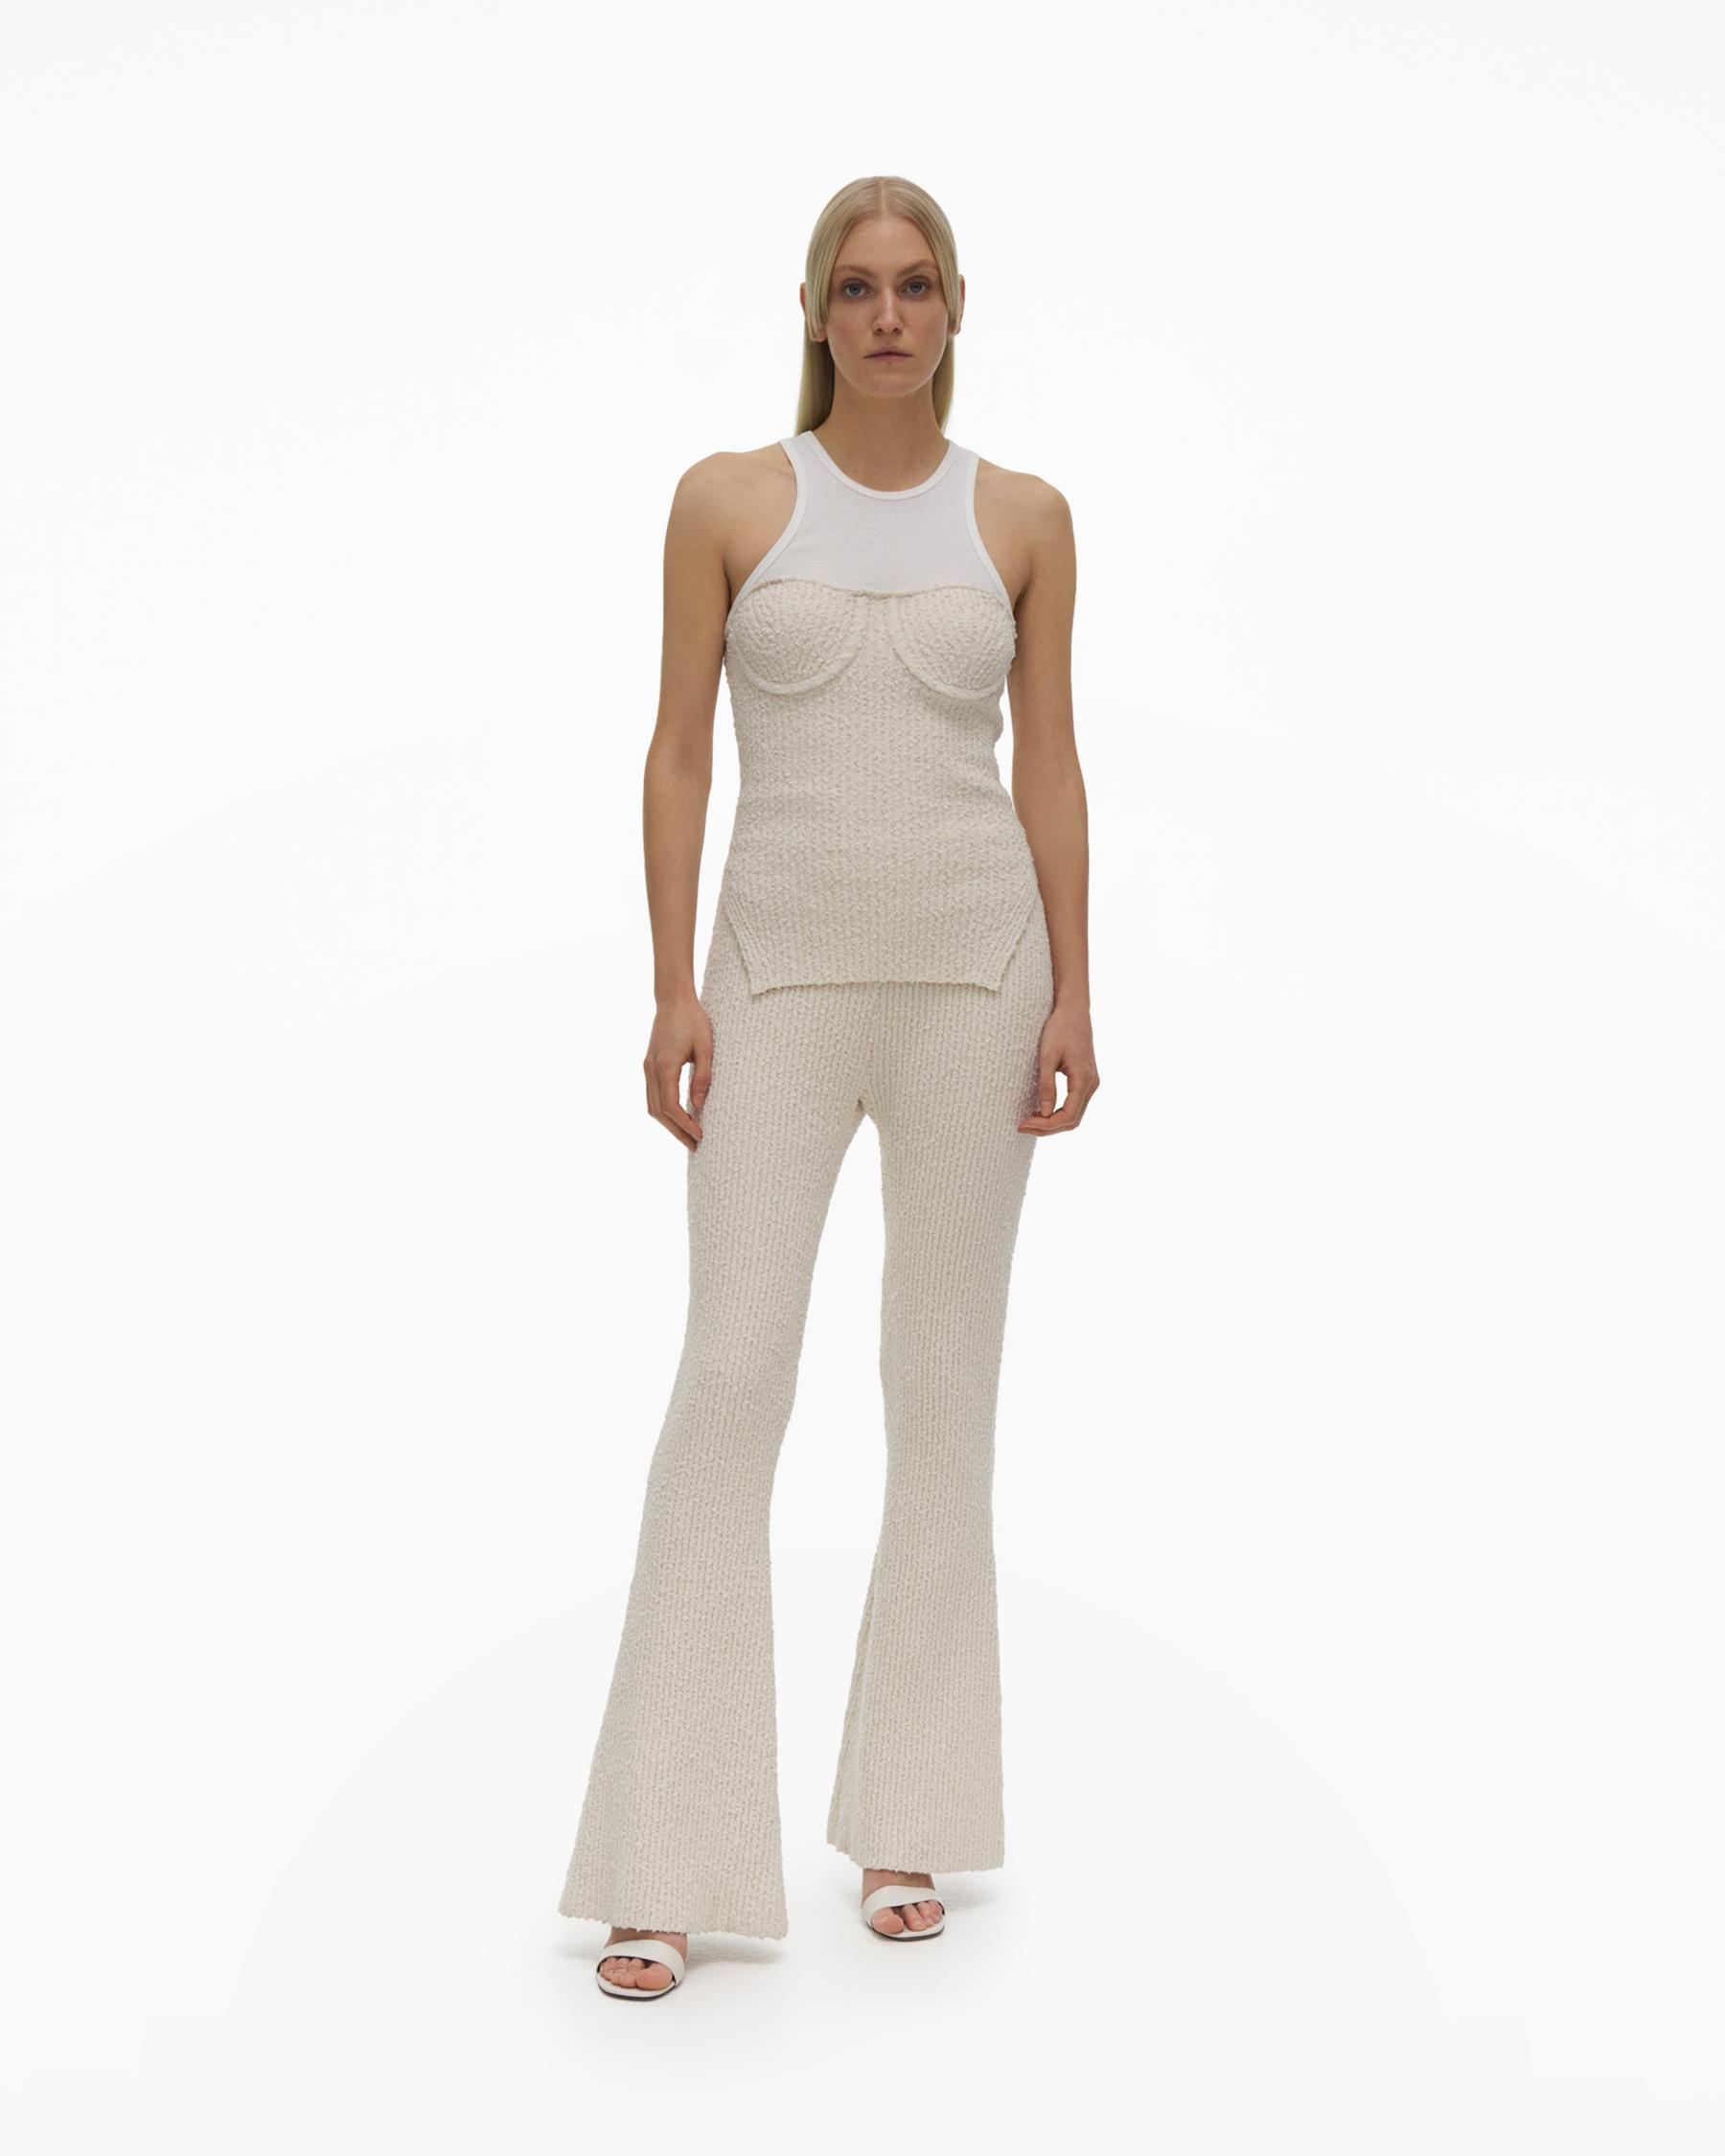 FLARED KNIT PANT